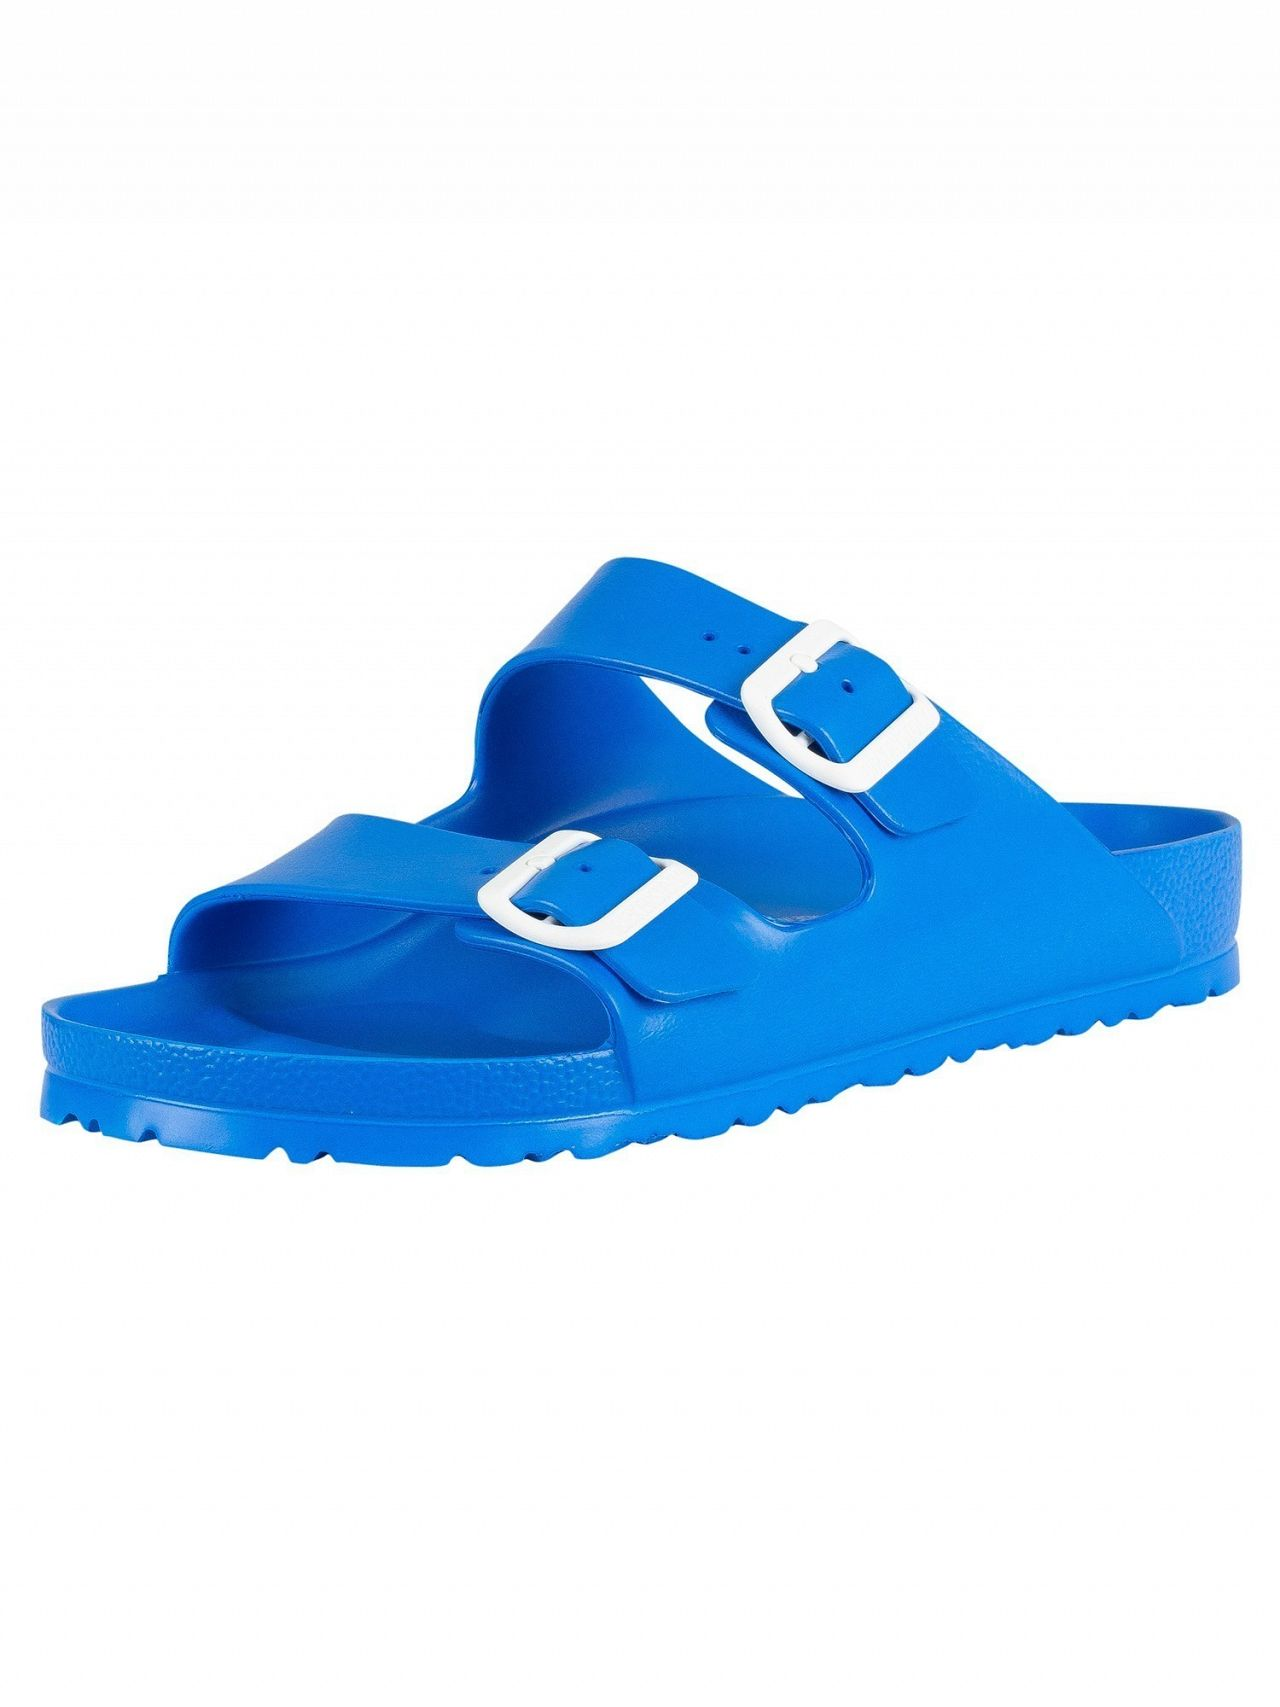 b30c7d59d514 Birkenstock Scuba Blue Arizona EVA Sandals